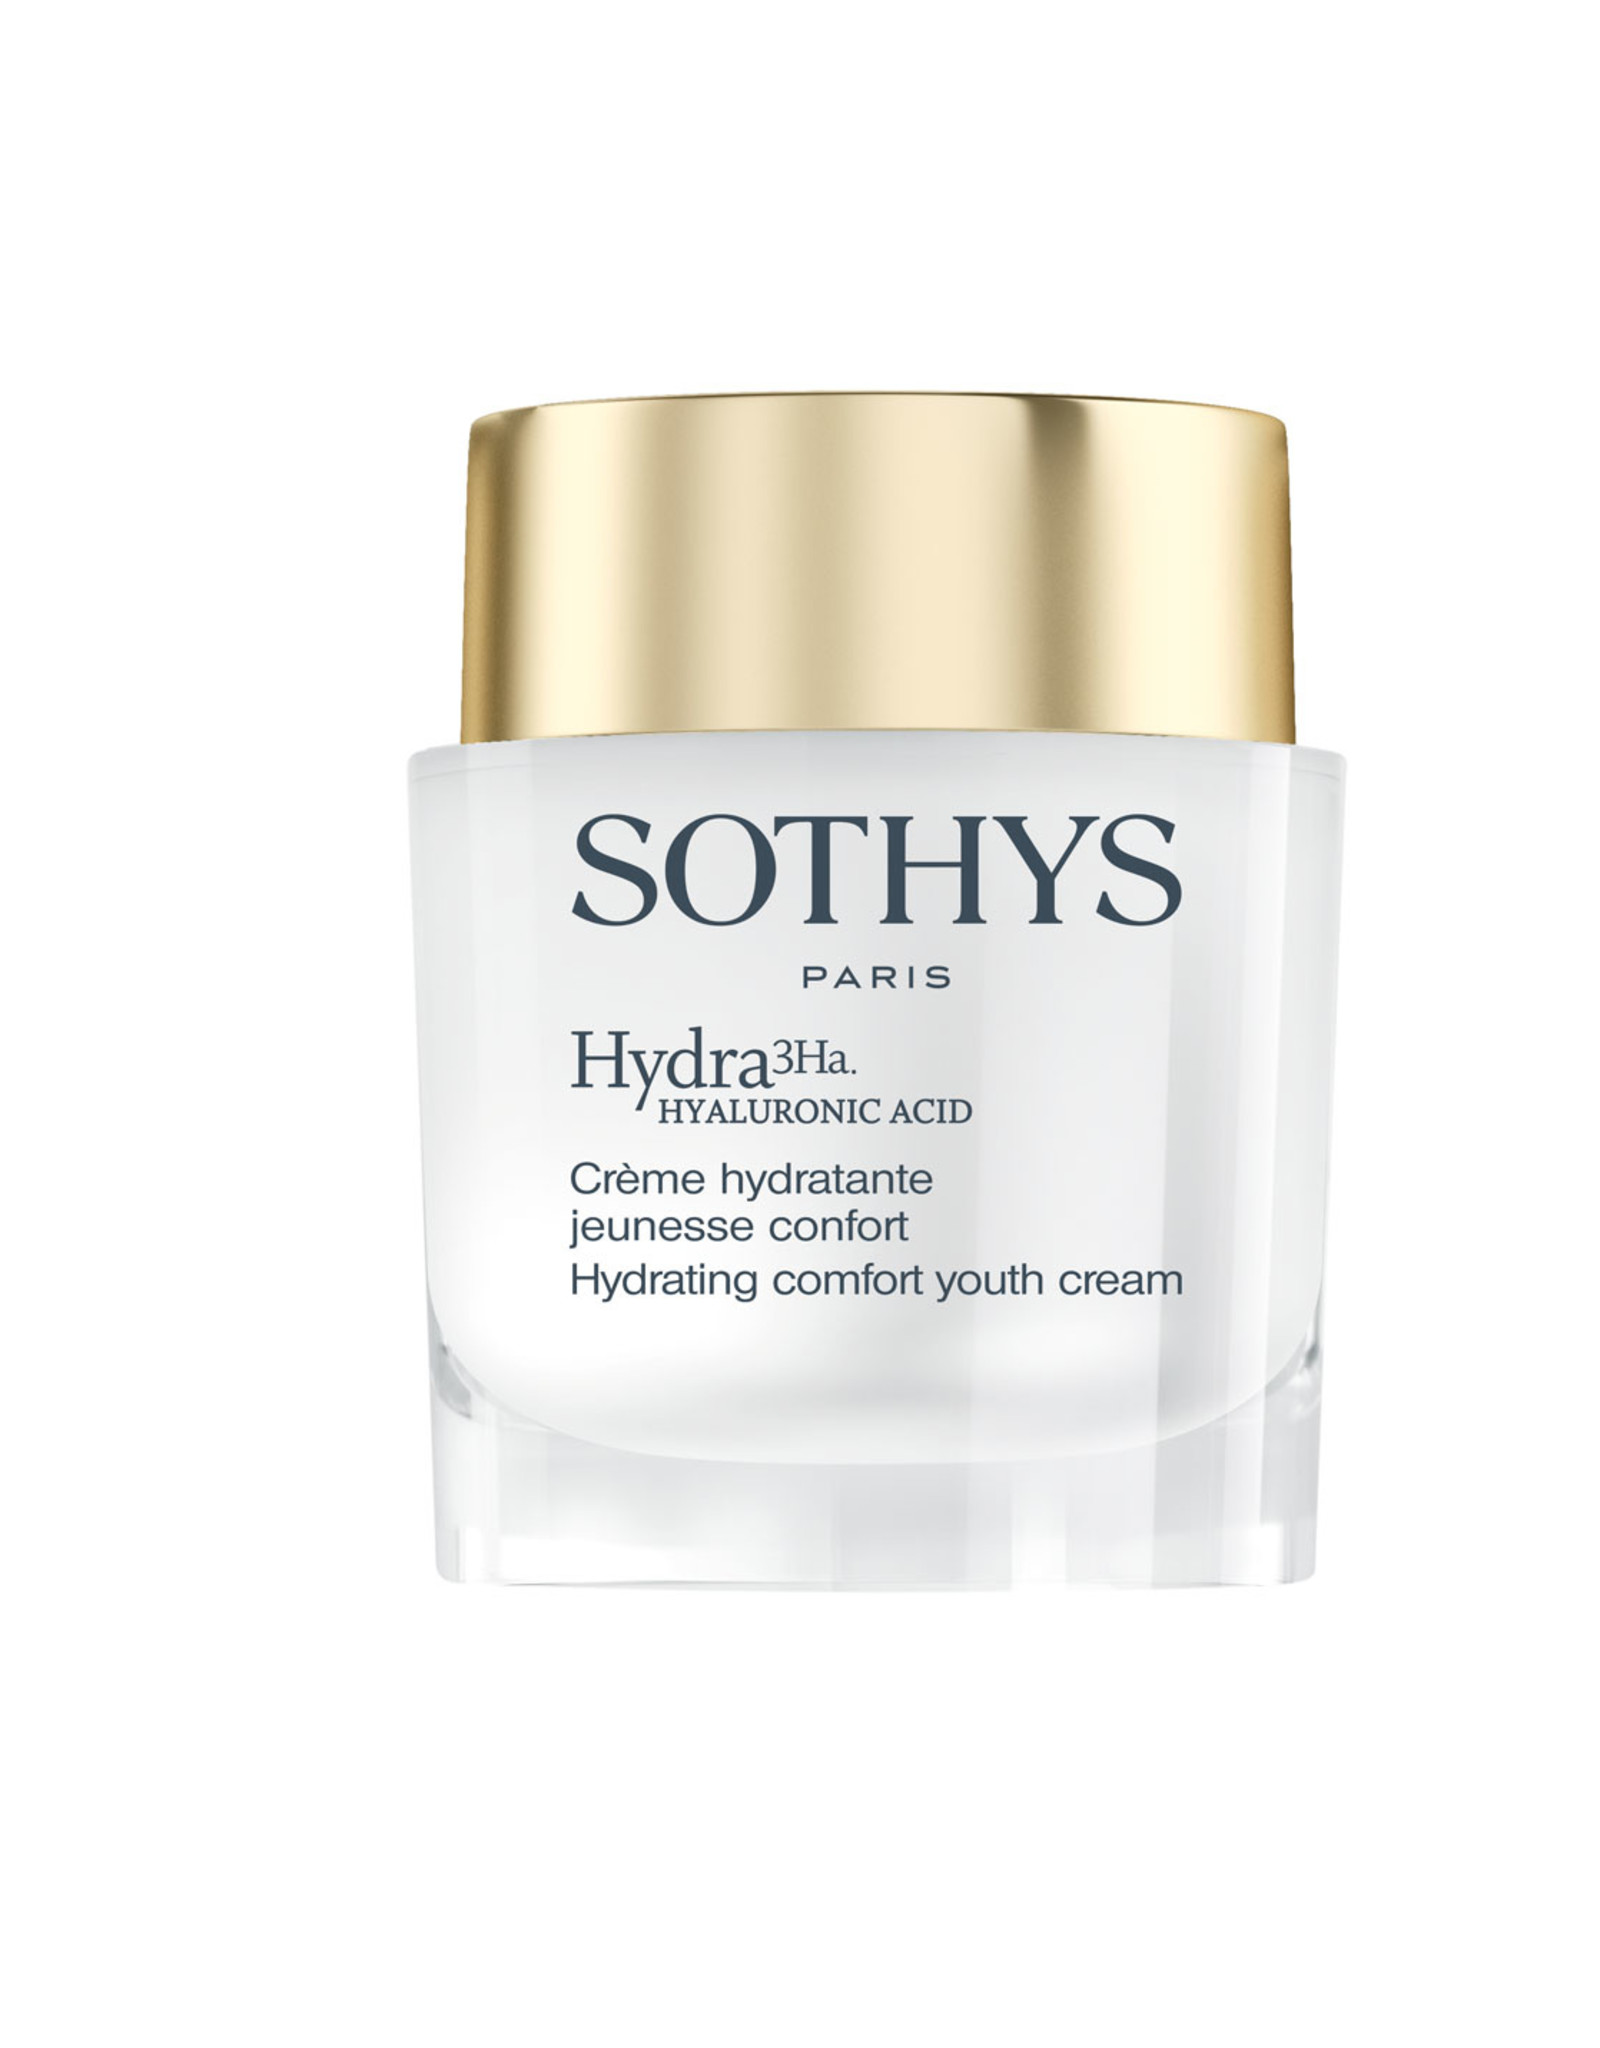 SOTHYS Hydra3Ha.™ Combo at a special price